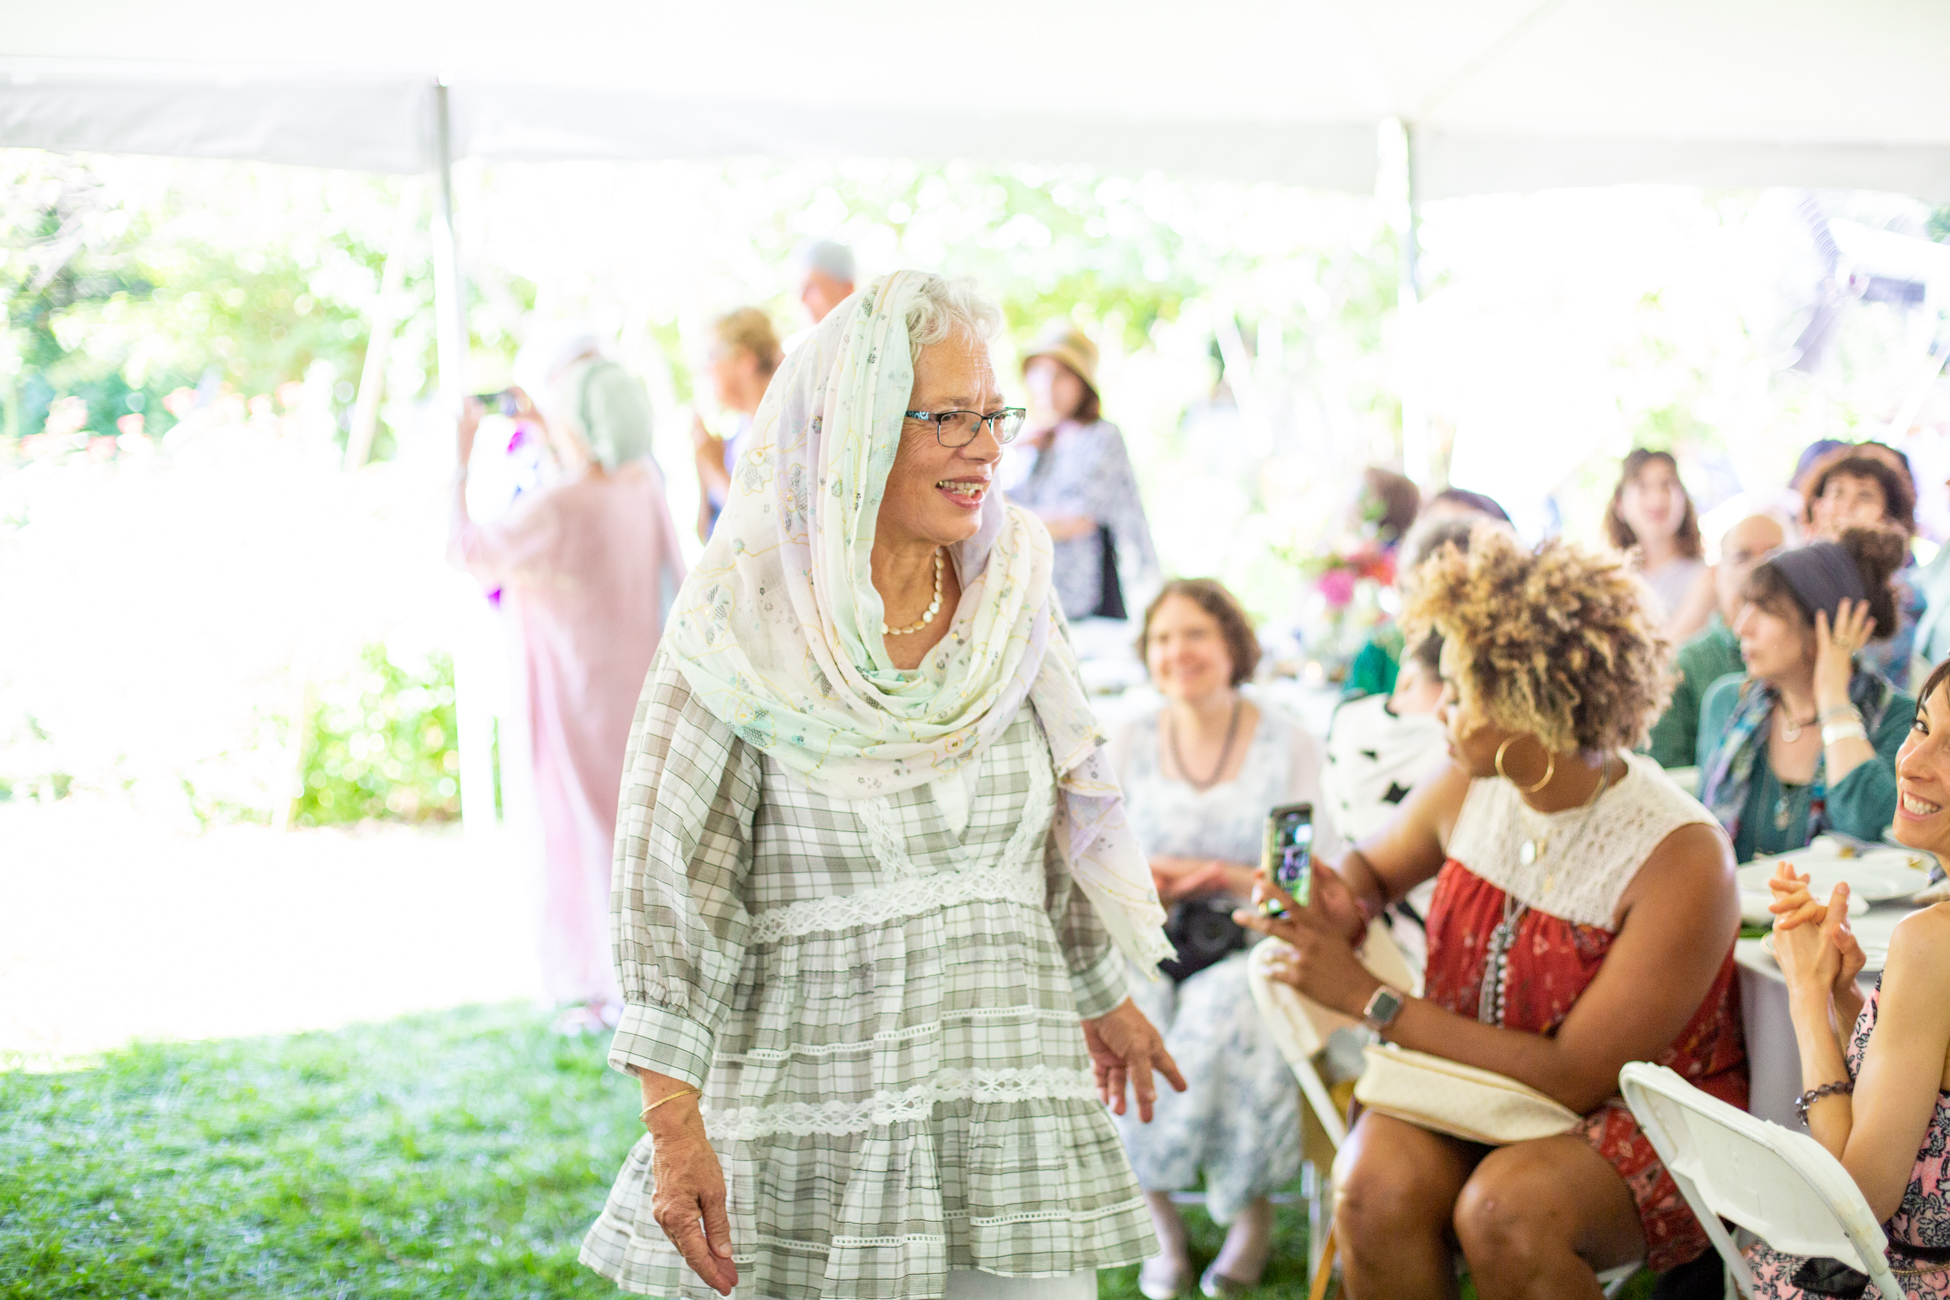 MaryFatimah and Noah's Summer Wedding at Bawa Muhaiyaddeen Fellowship Farm by Avi Loren Fox LLC-13.jpg